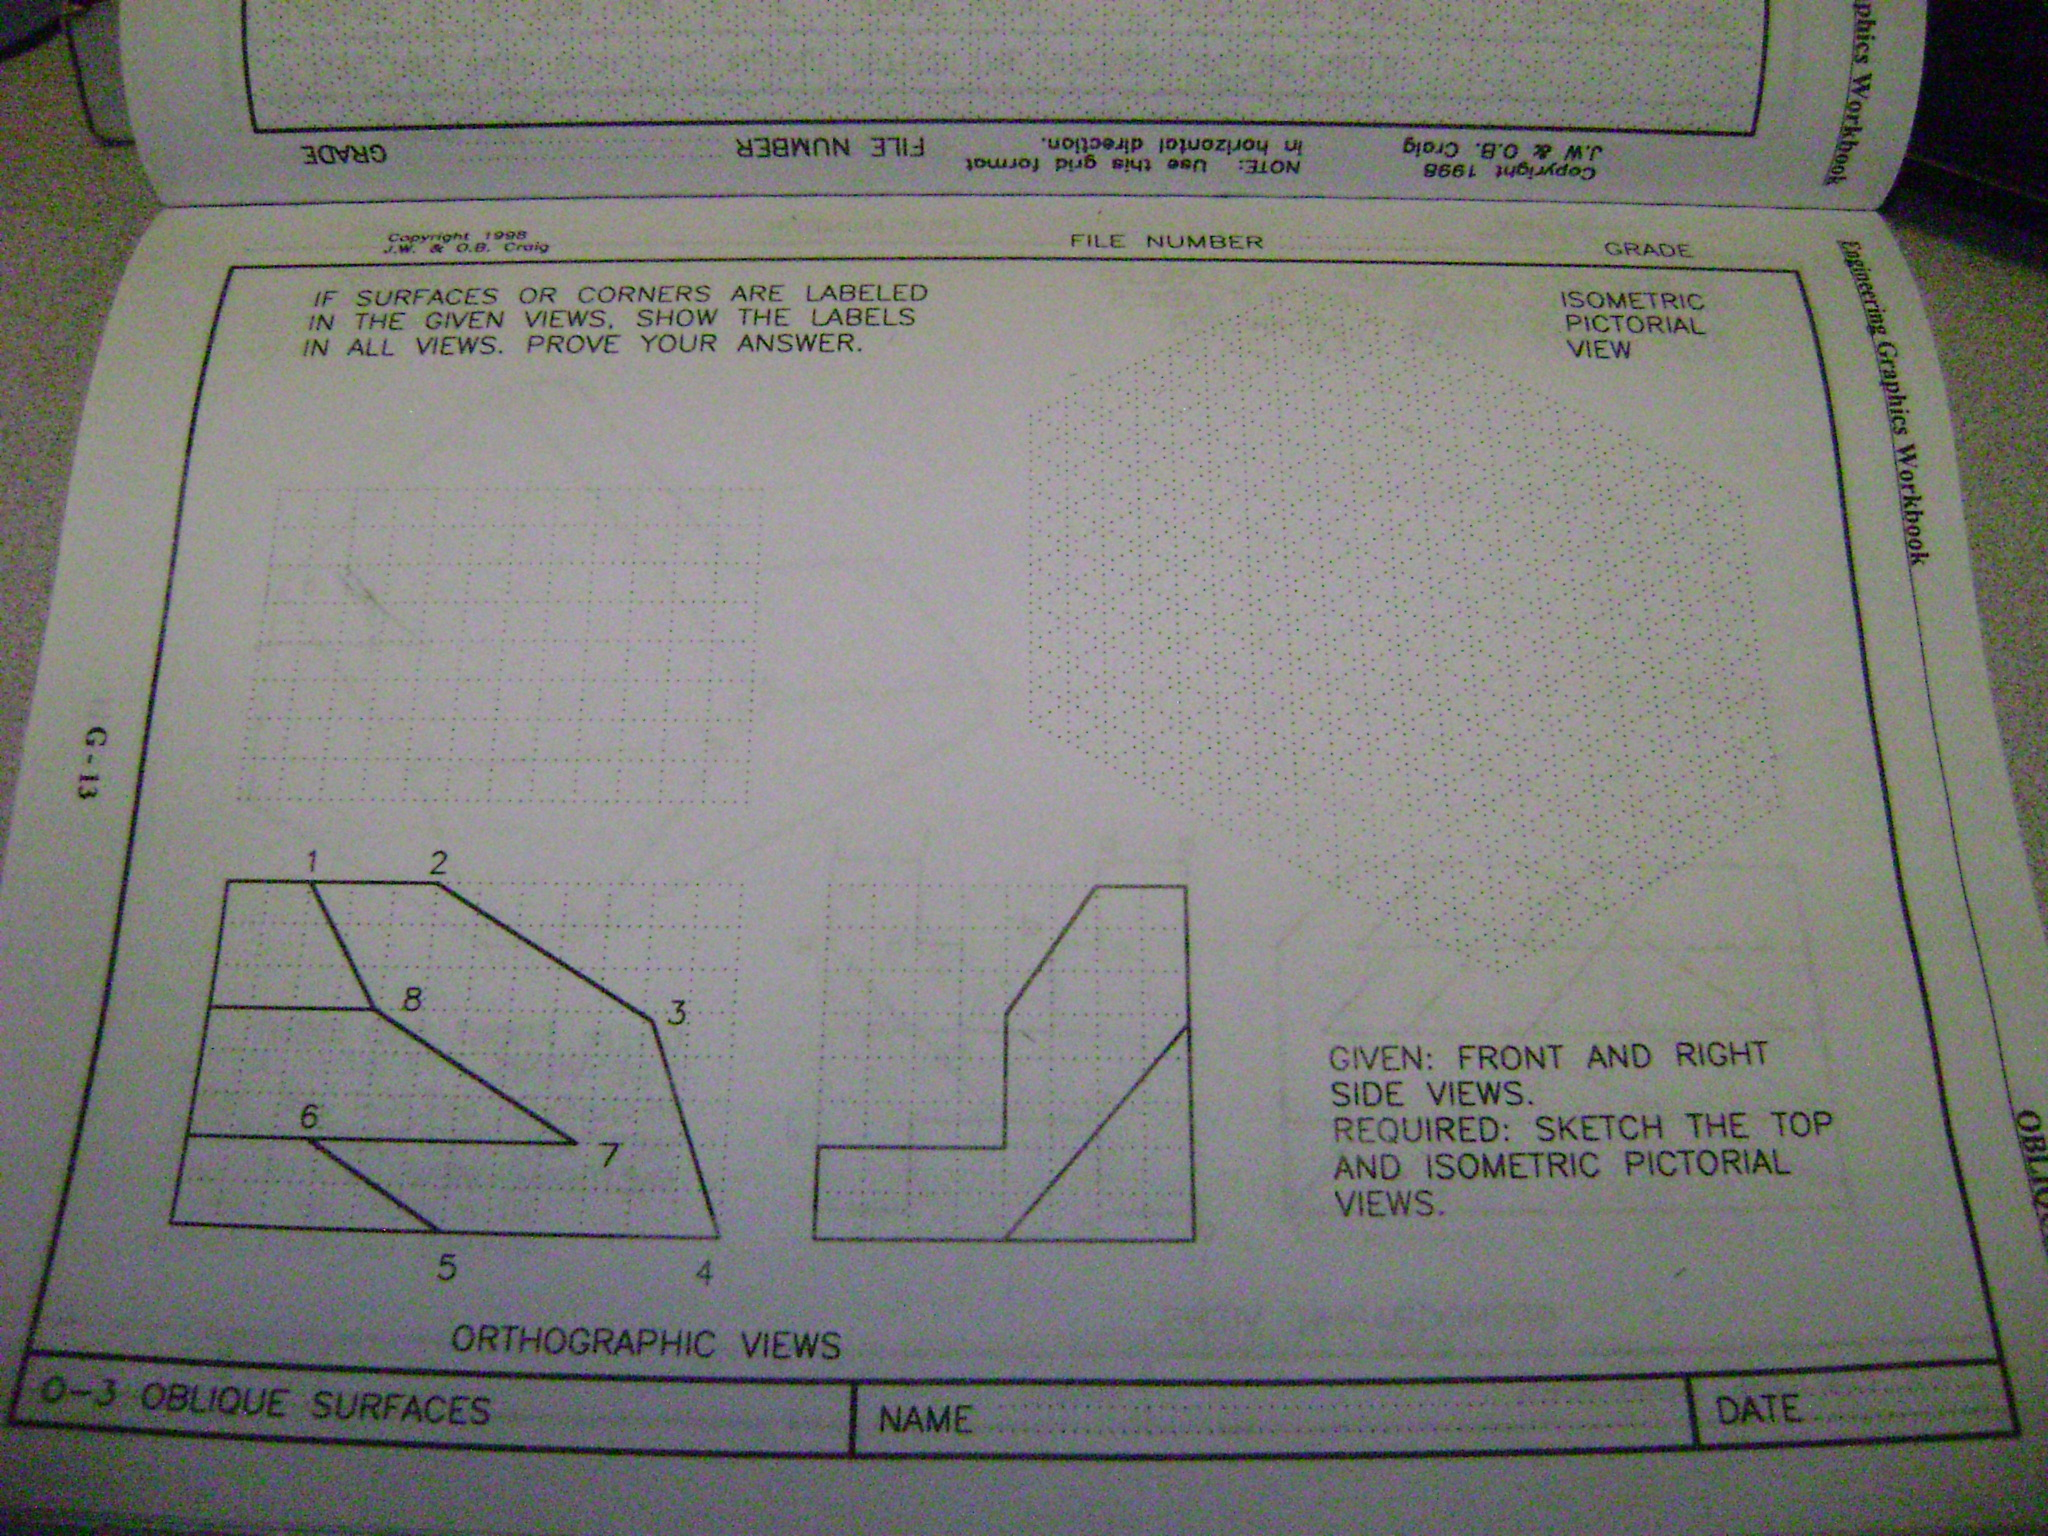 easy engineering drawing assignment i can t visua chegg com easy engineering drawing assignment i can t visualize these need quick response just draw the top view and isometric pictorial view for both of these